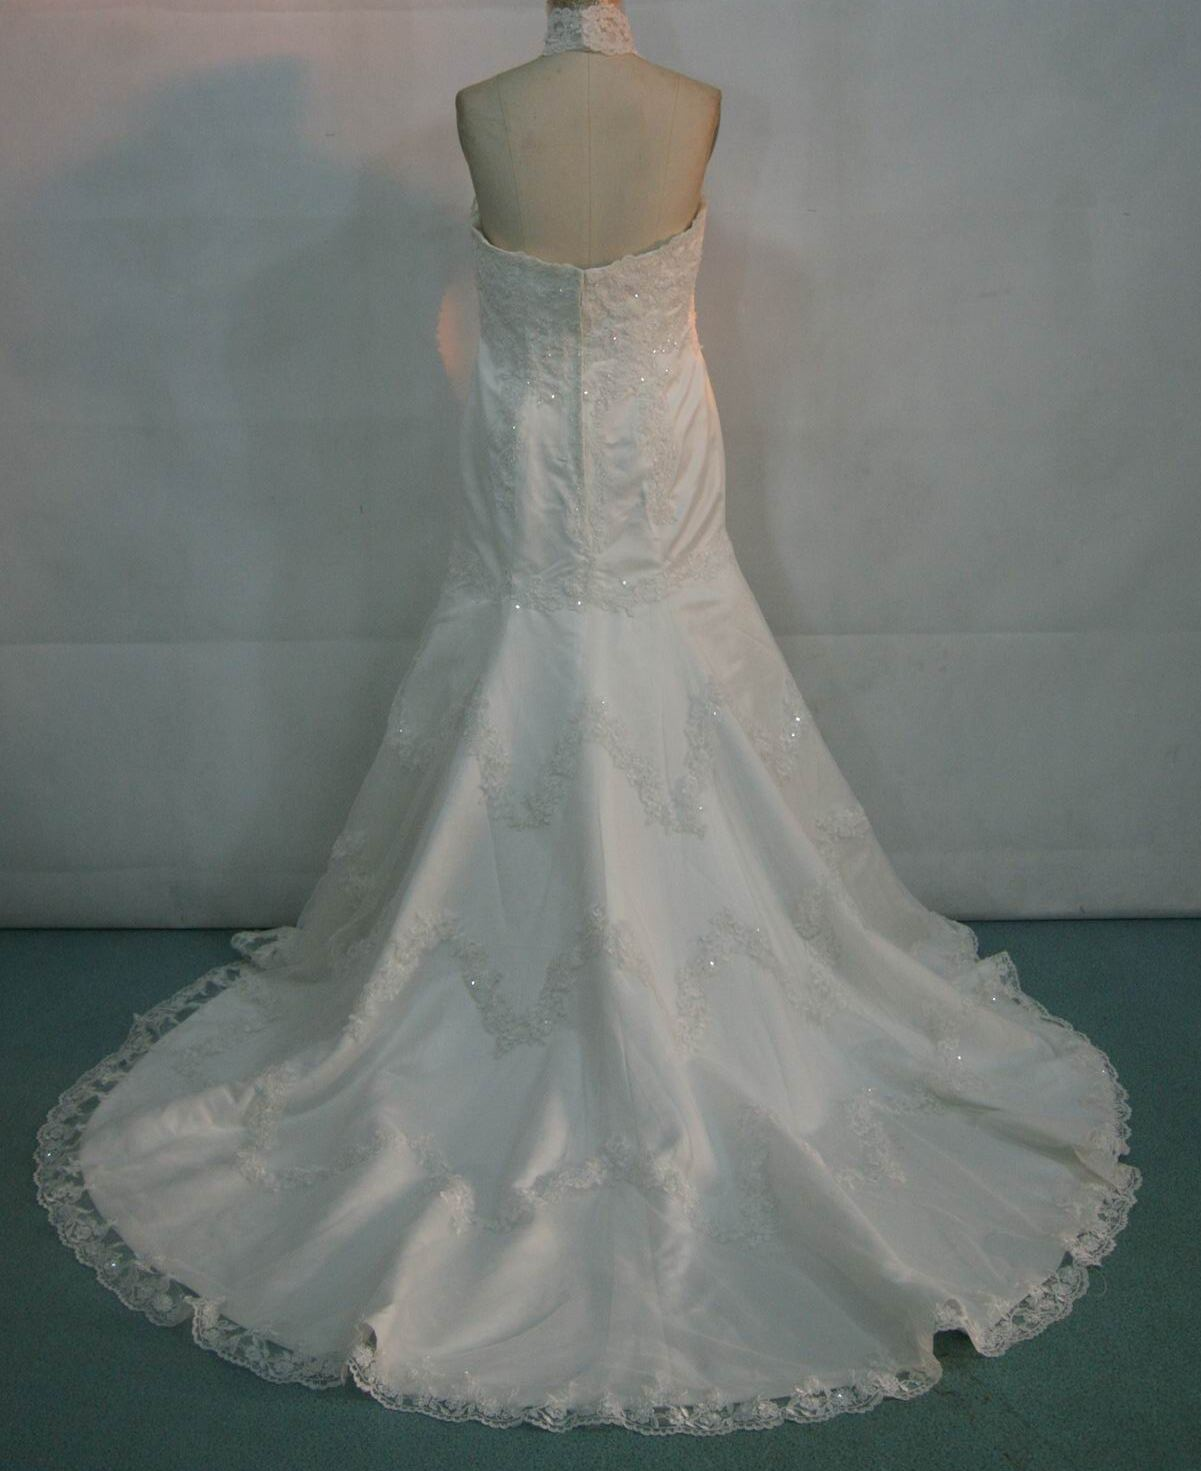 Halter mermaid bridal gown with lace overlay